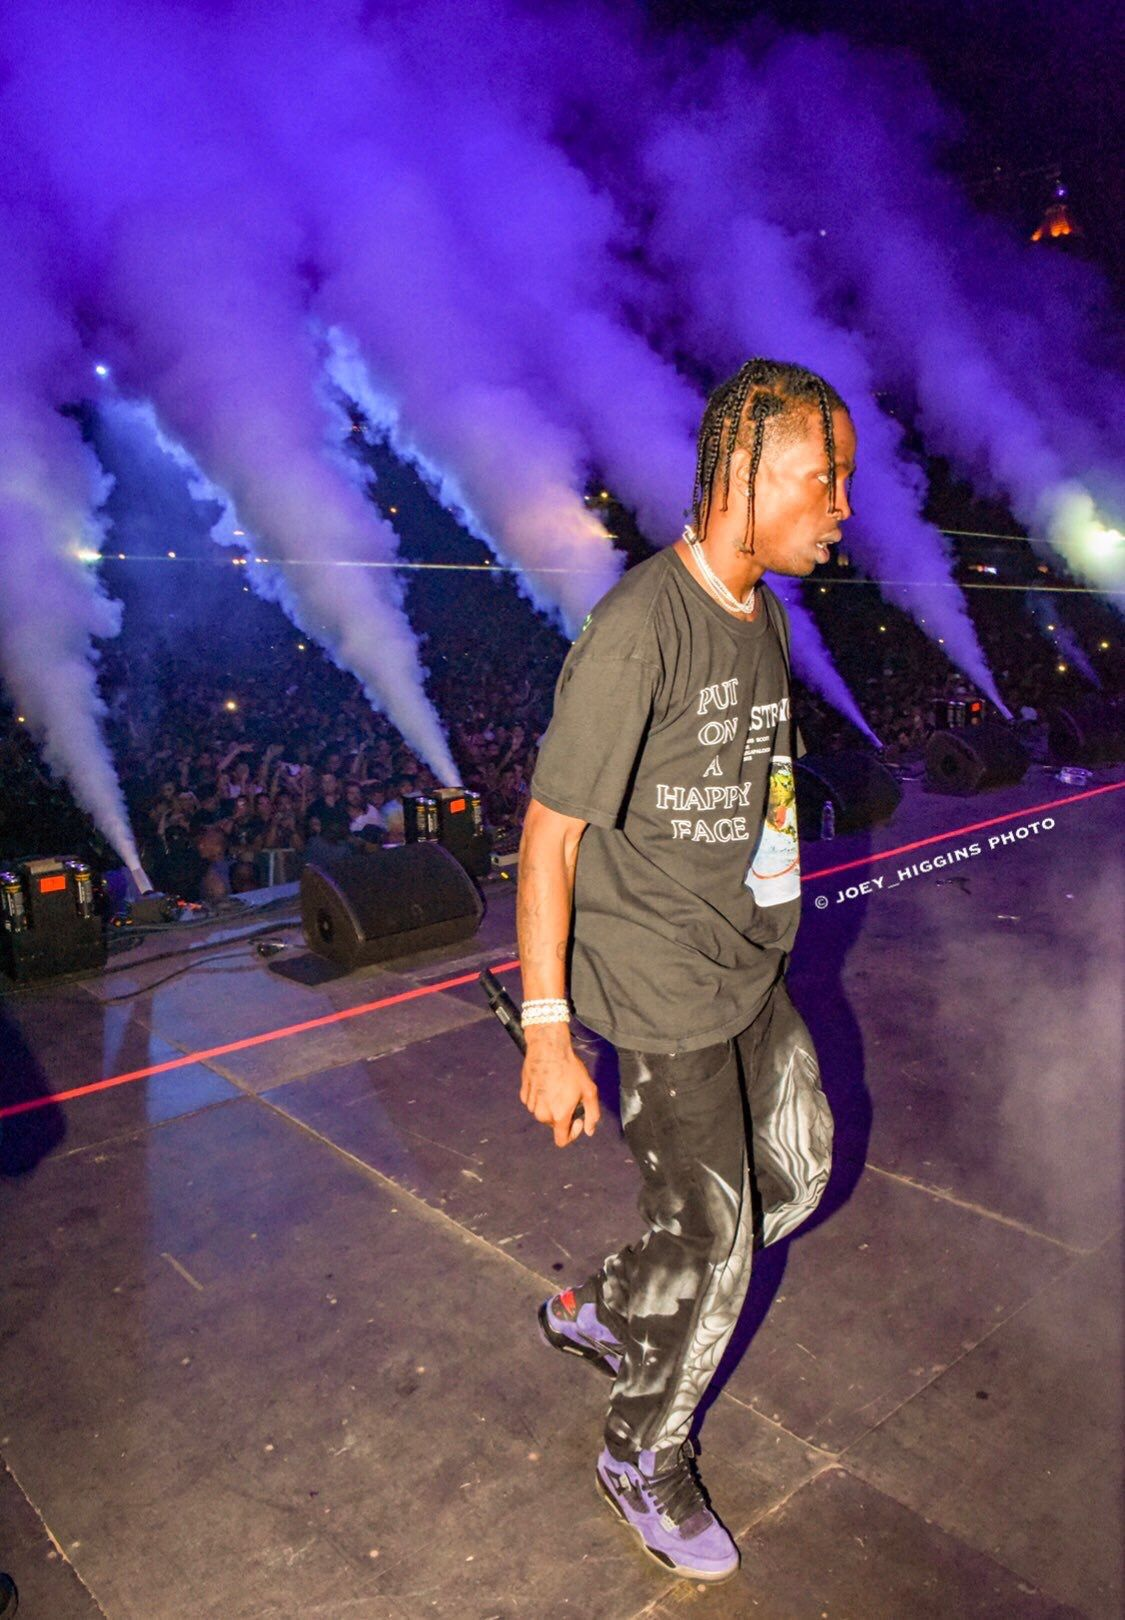 Pin By Llm On Scott S World Travis Scott Wallpapers Travis Scott Iphone Wallpaper Travis Scott